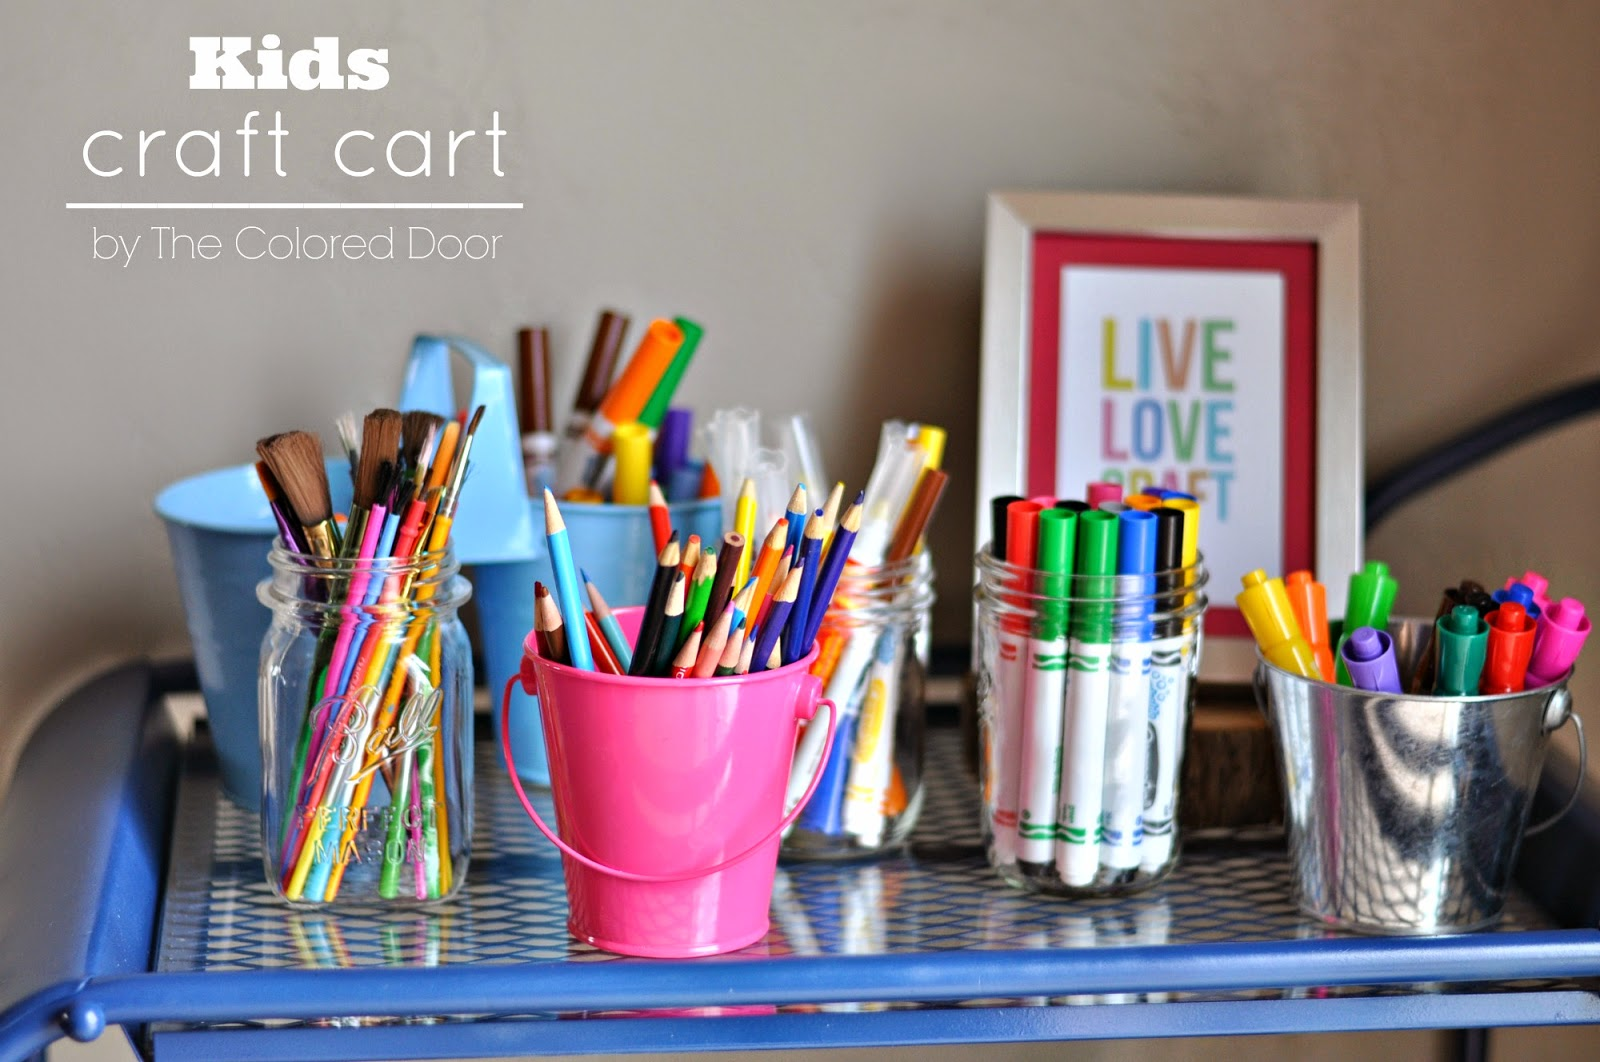 Kids Craft Cart, great idea for summer and impromptu craft sessions l The colored door